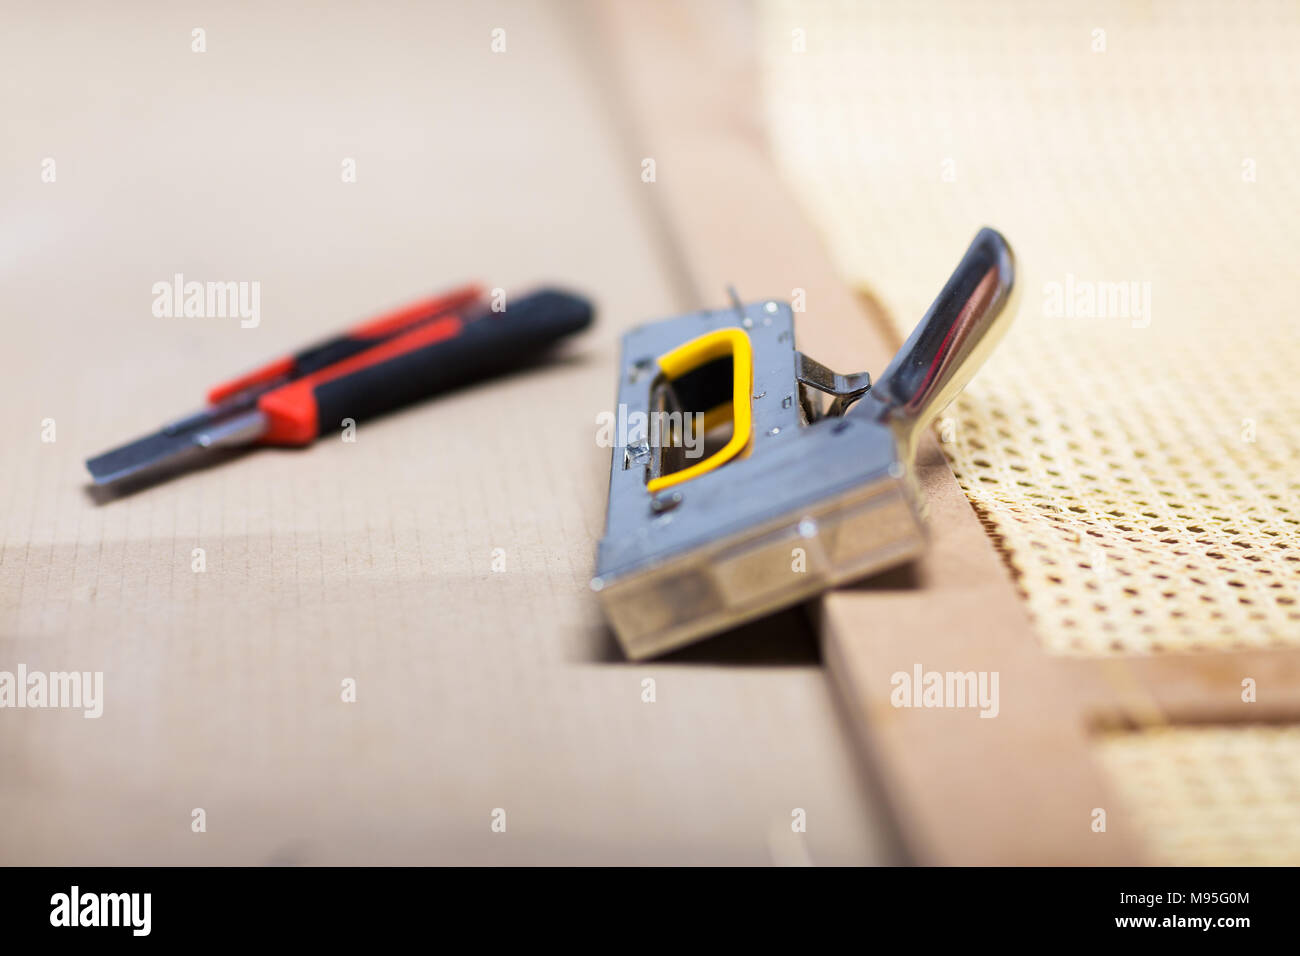 Staple Gun And Cutter Knife With Furniture Item   Stock Image